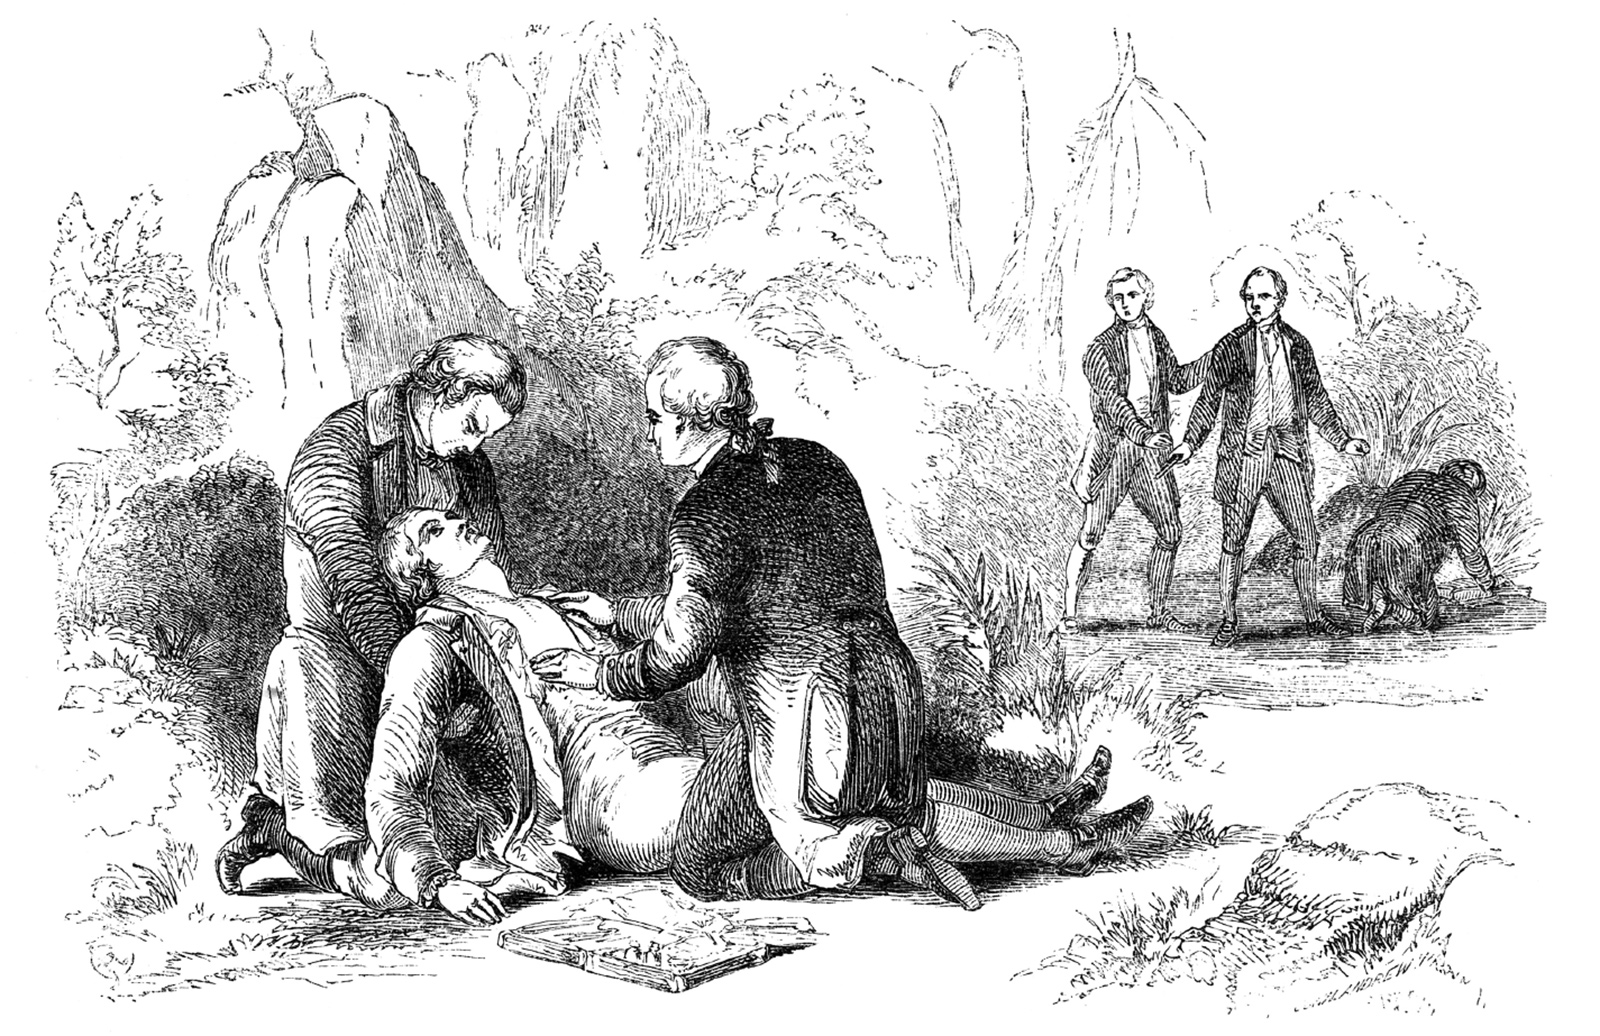 'The death of Alexander Hamilton after his duel with Aaron Burr'; nineteenth-century engraving